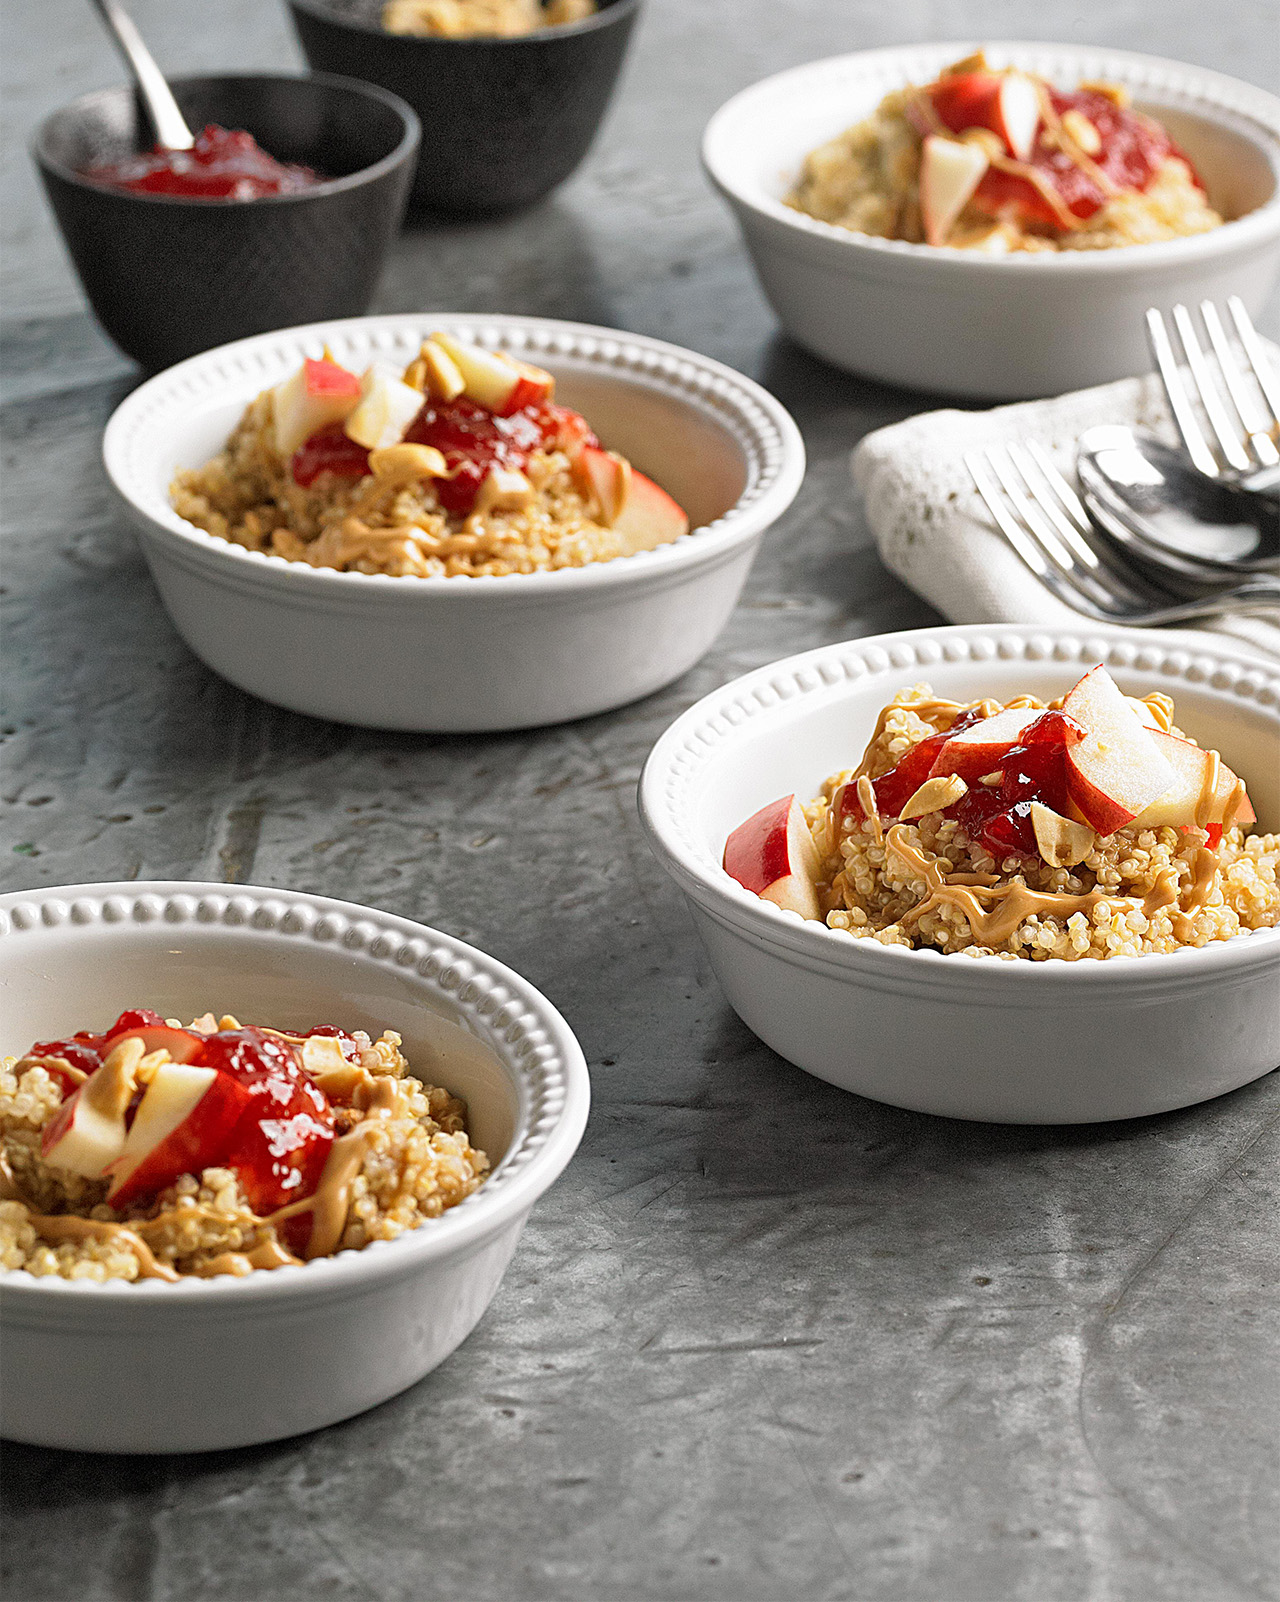 Gluten-Free Peanut Butter and Fruit Quinoa